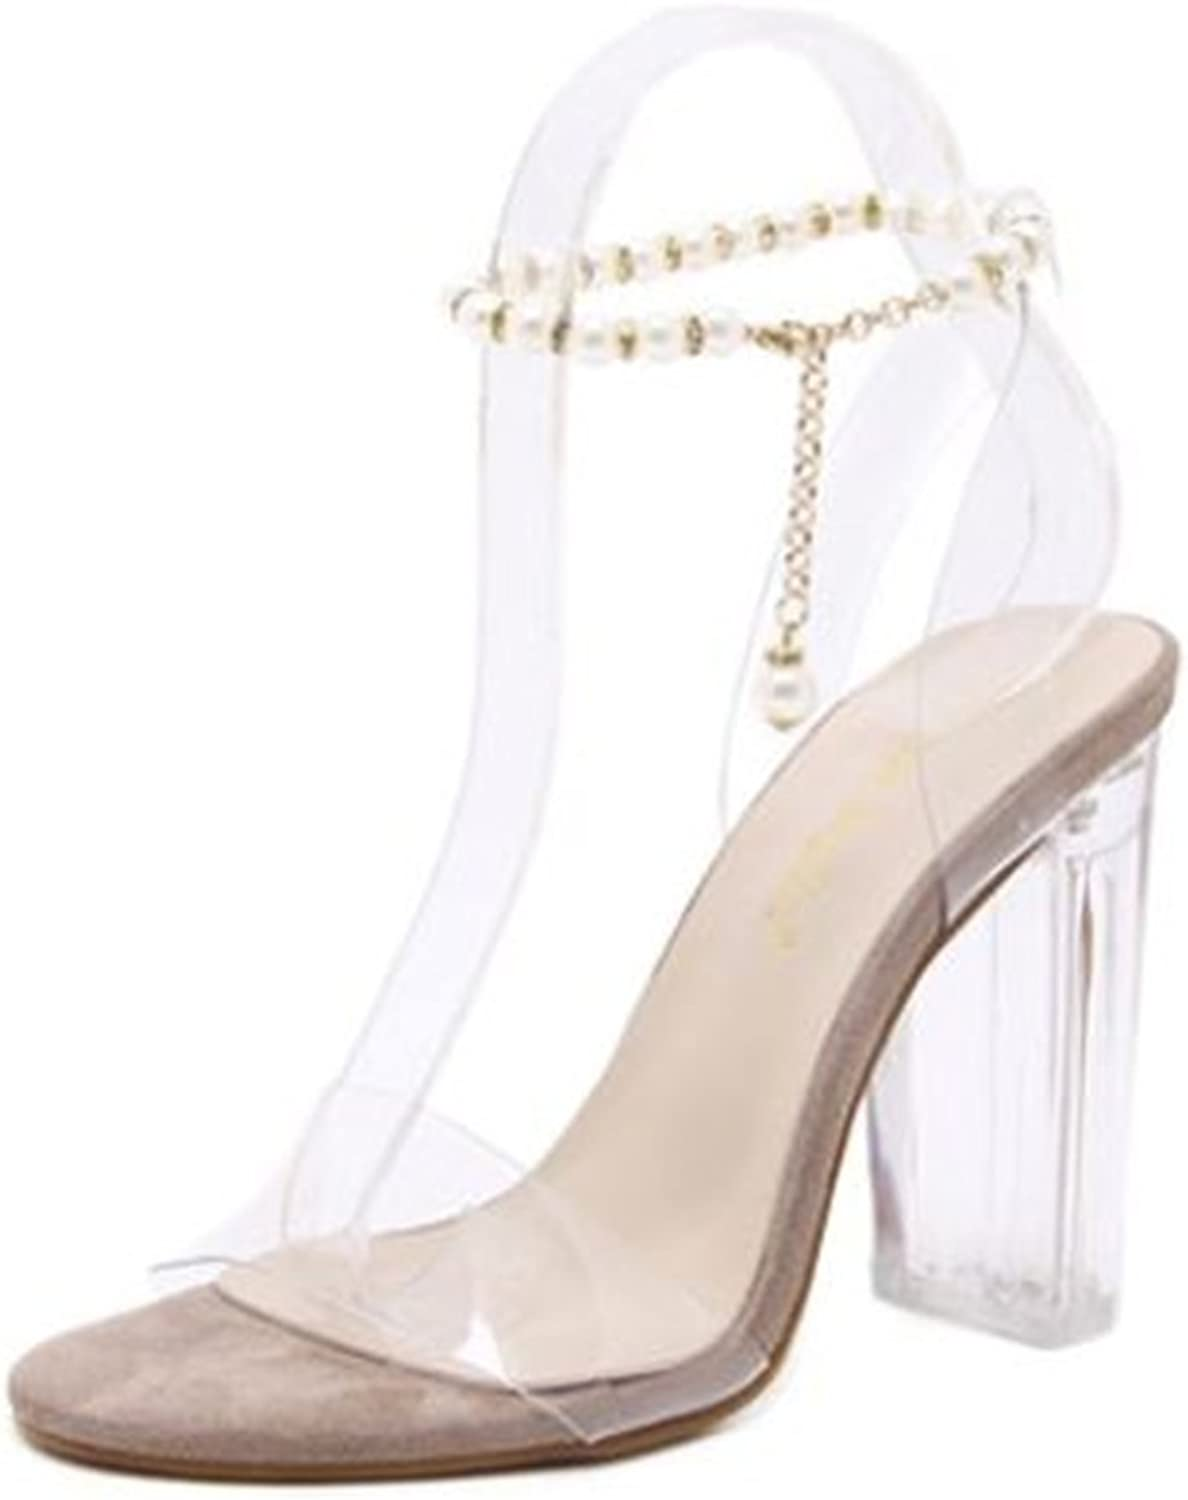 pink town Women Sandals Bling 8cm High Heels Clear Peal Summer Square Heel Women shoes Wedding shoes